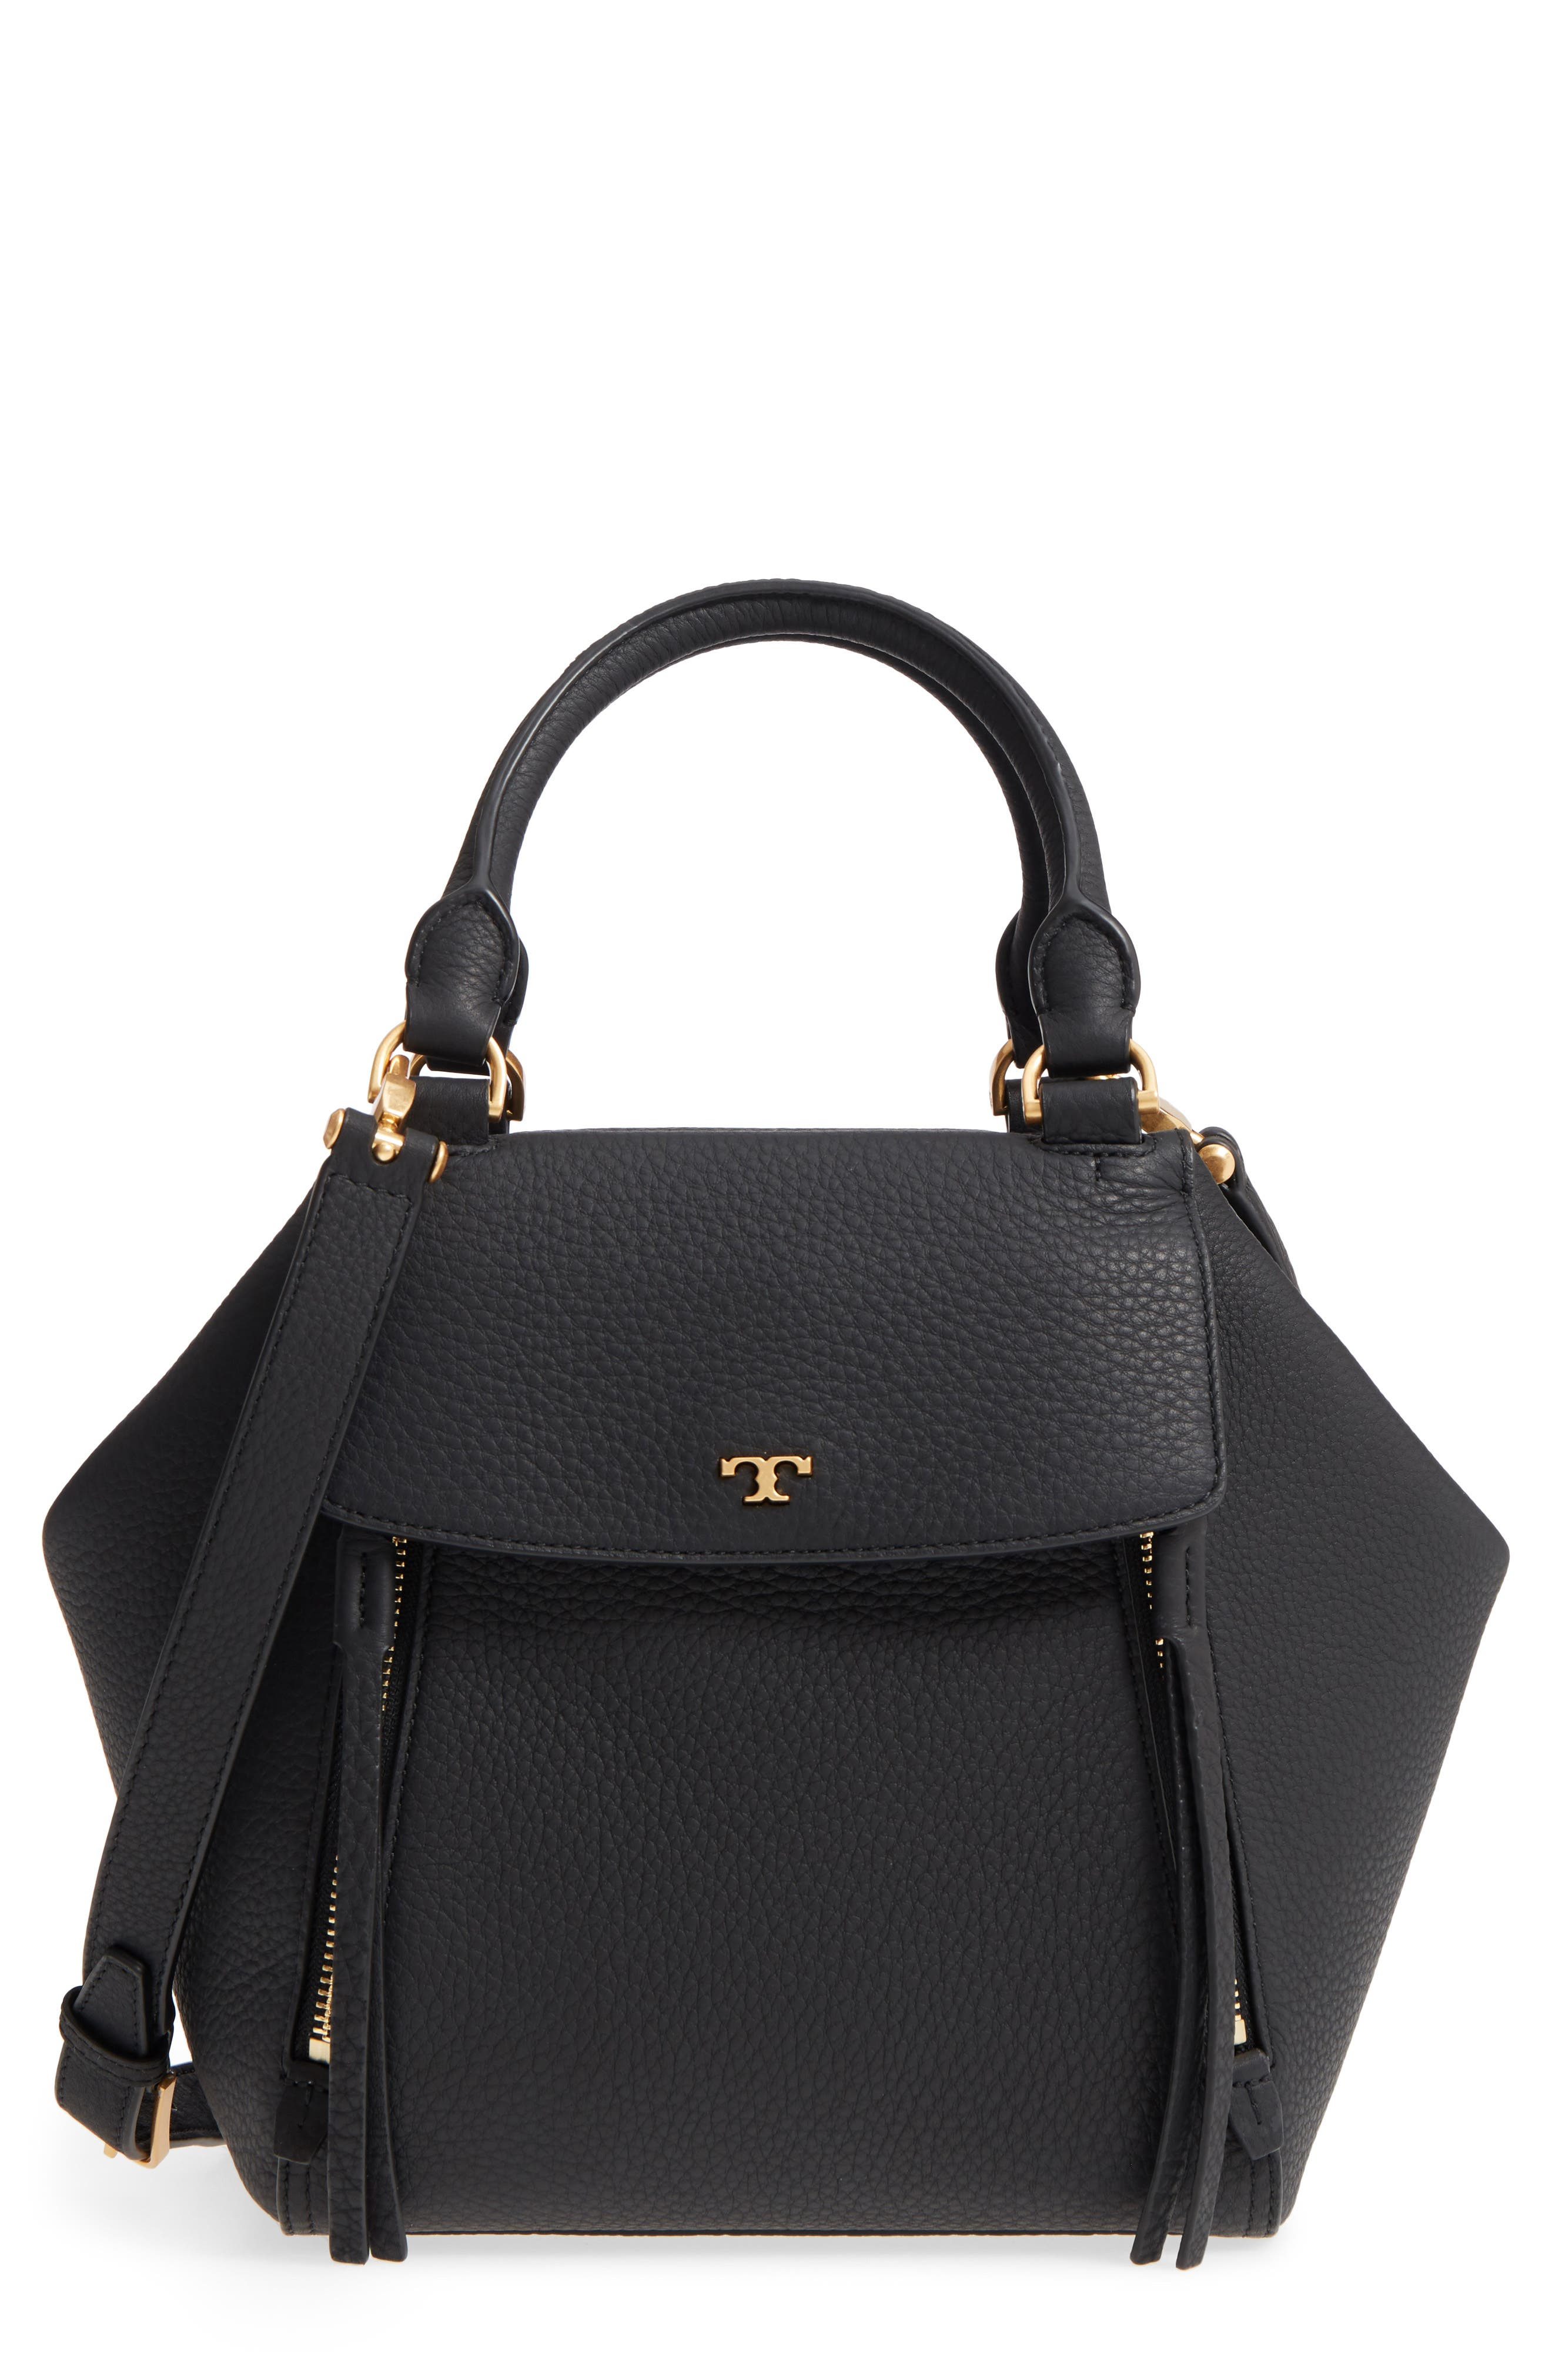 Half Moon Leather Satchel,                         Main,                         color, Black